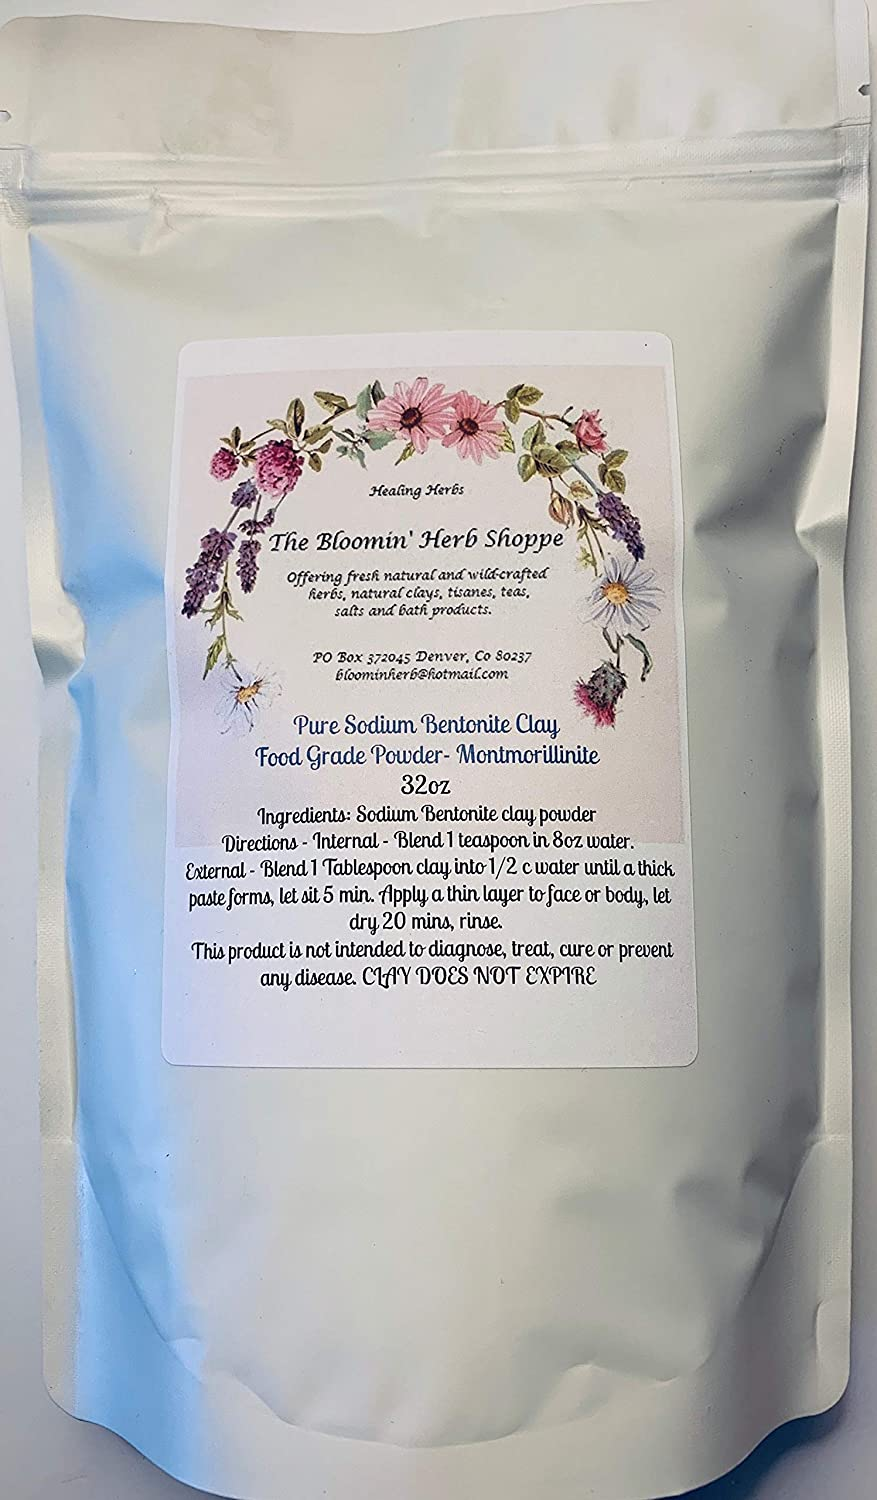 Sodium Bentonite Clay Food Grade Fine Powder Bulk | 32oz 2lbs | Internal External | The Bloomin Herb Shoppe | Mined in The Big Horn Wyo | Detox | Water Washed no Chemicals | Masks Wraps spa